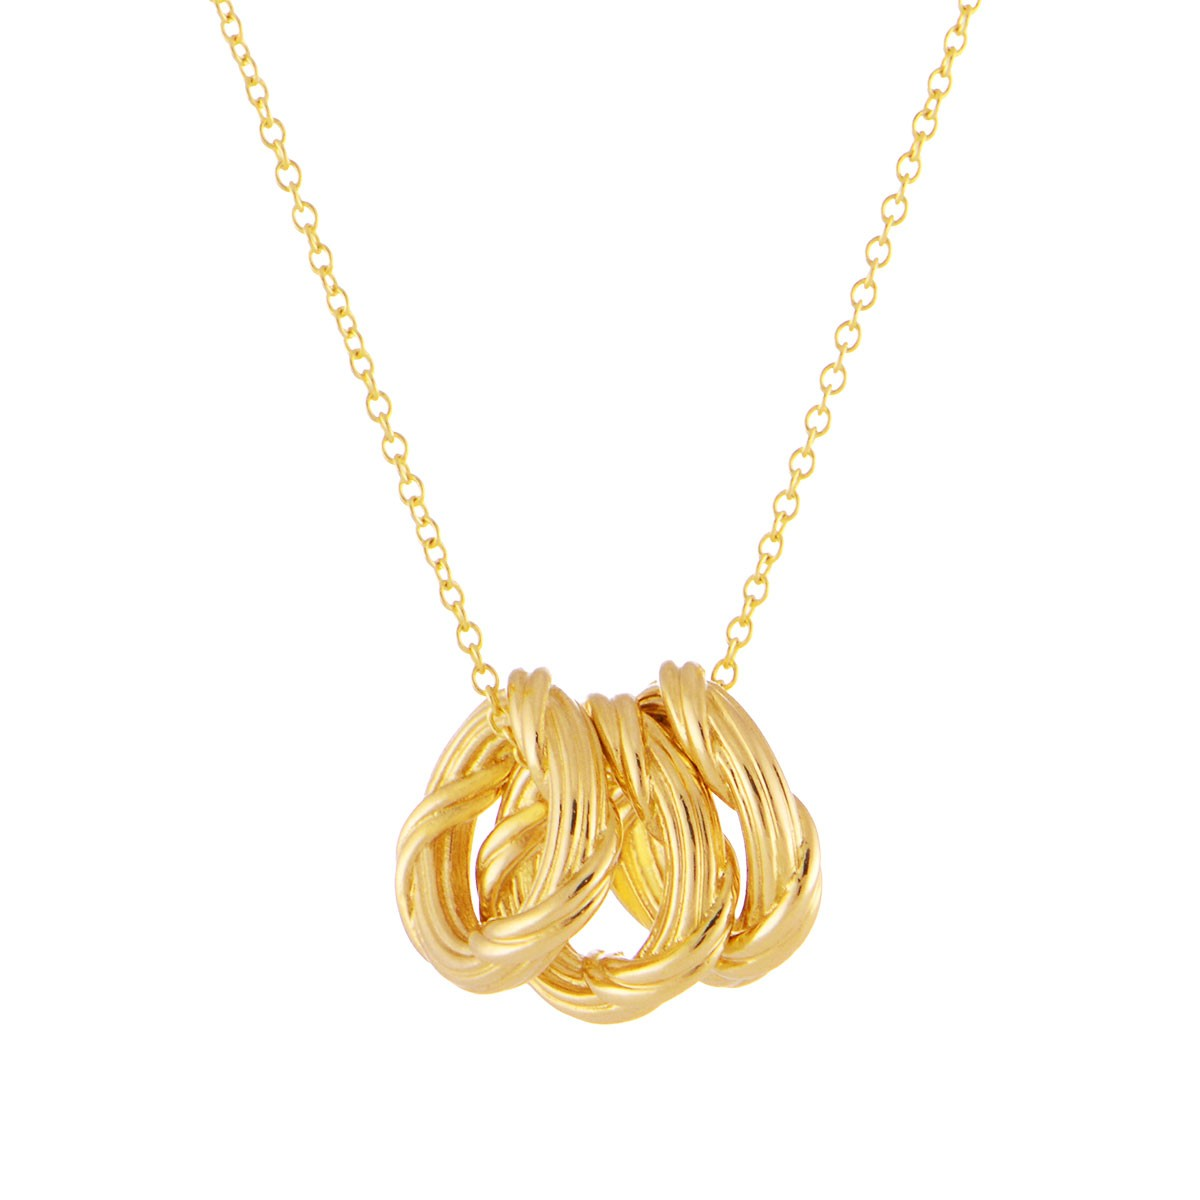 bestseller jewelry necklace cash gold heart on i shopee delivery philippines